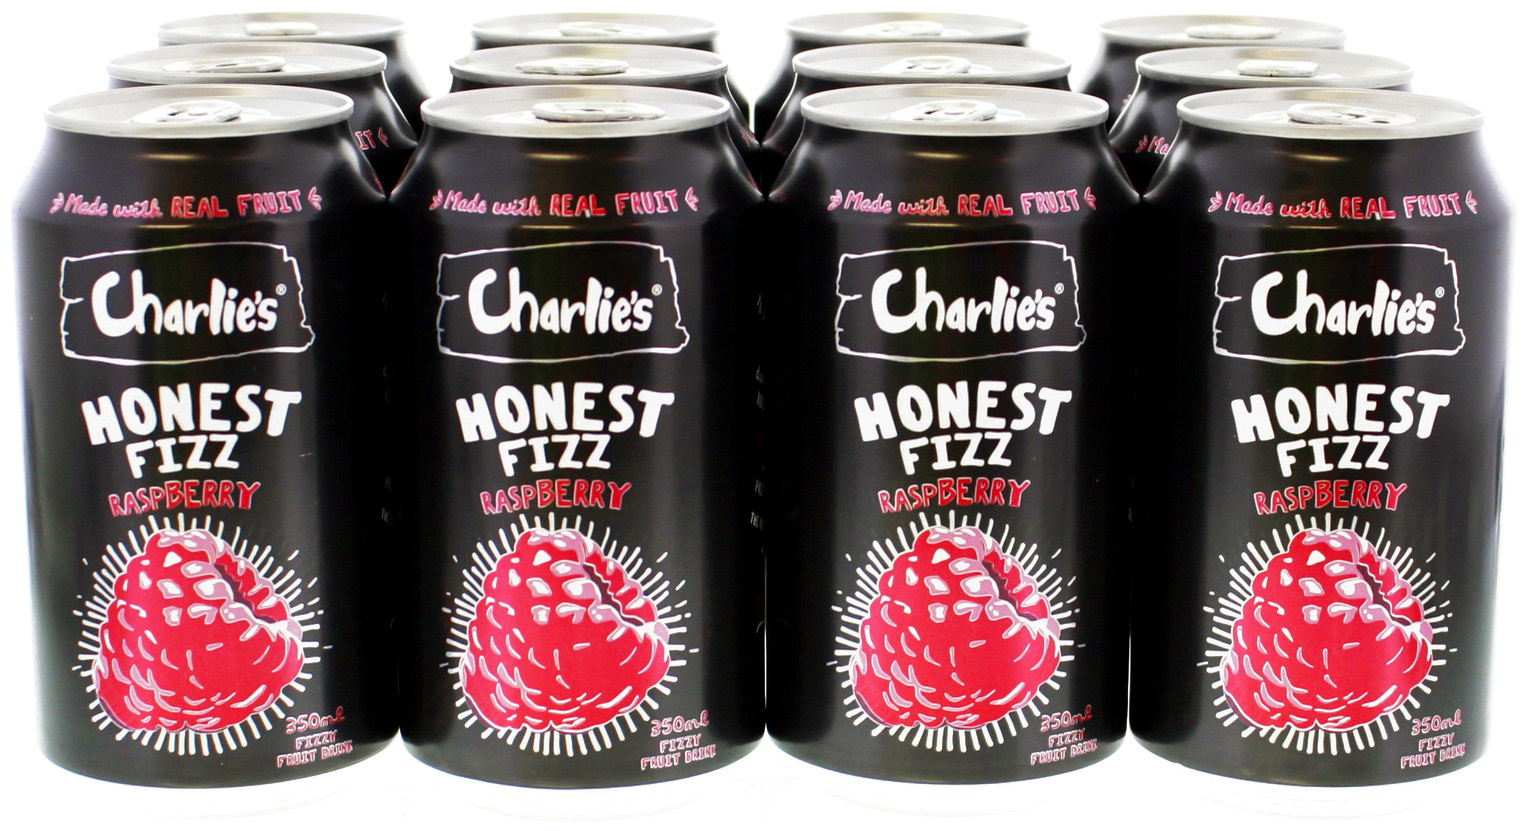 Charlie's Honest Fizz - Raspberry (350ml) image